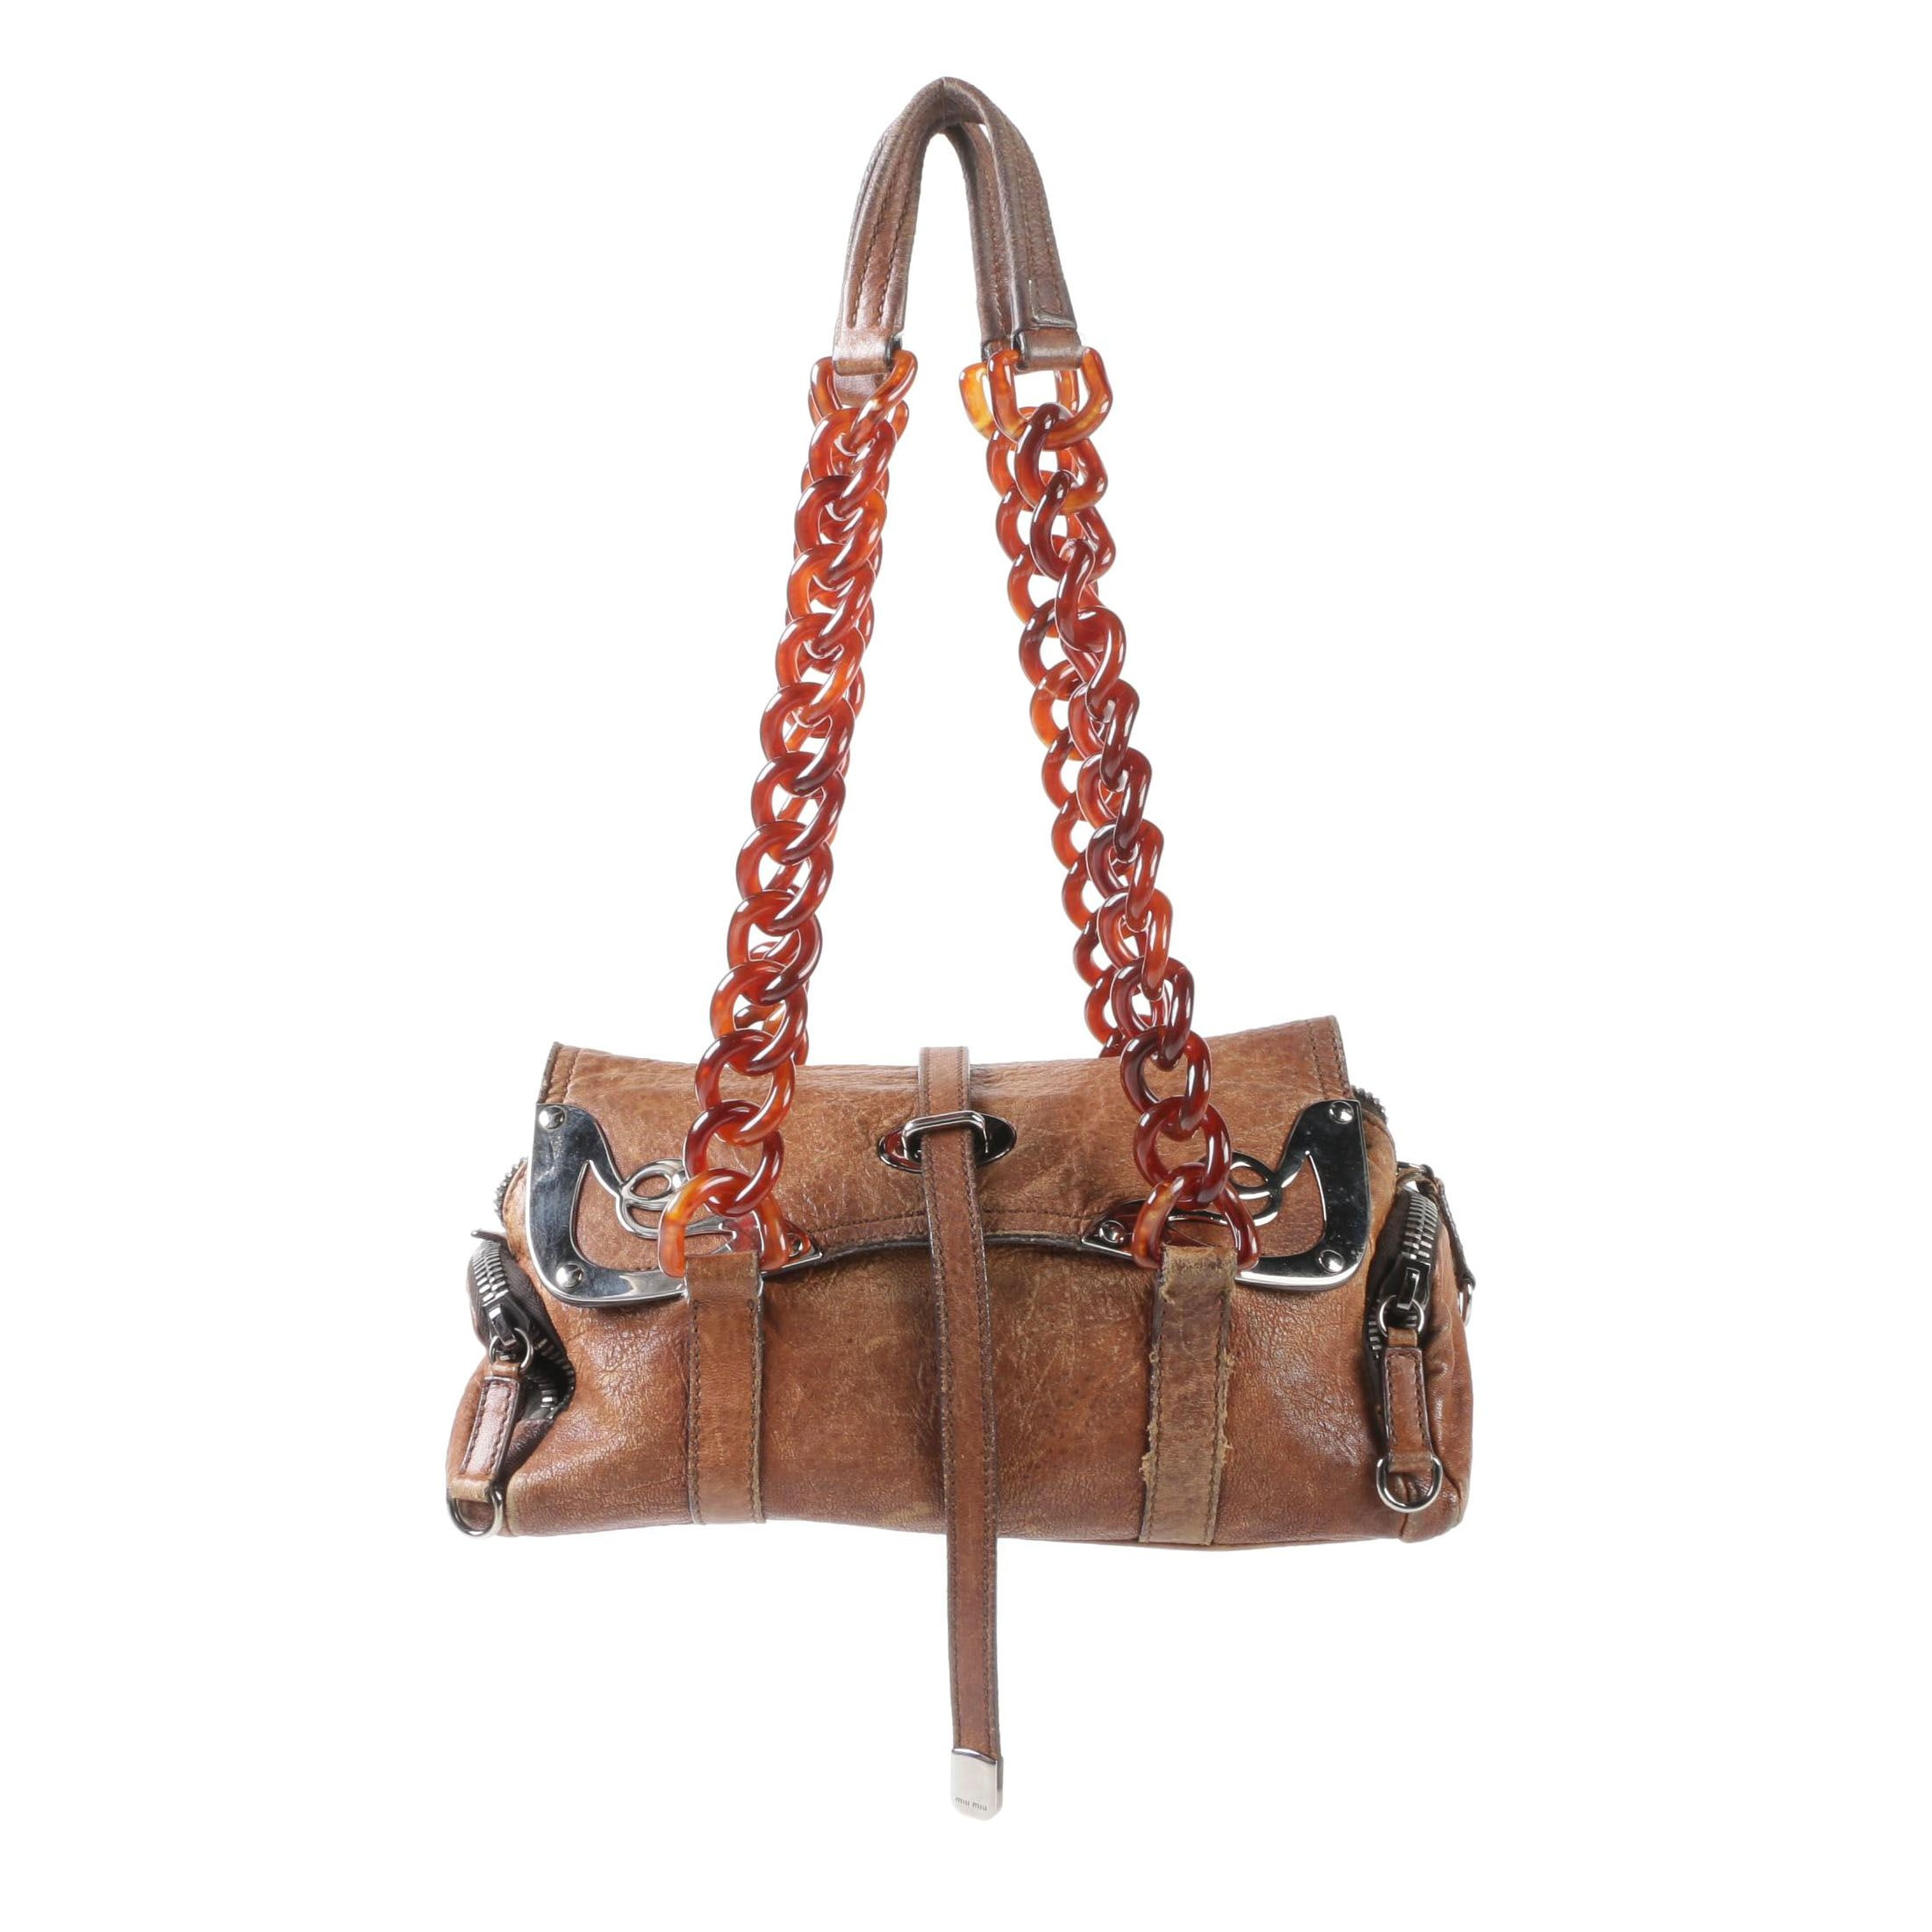 Miu Miu Distressed Leather Flap Front Bag with Silver Tone Corner Accents